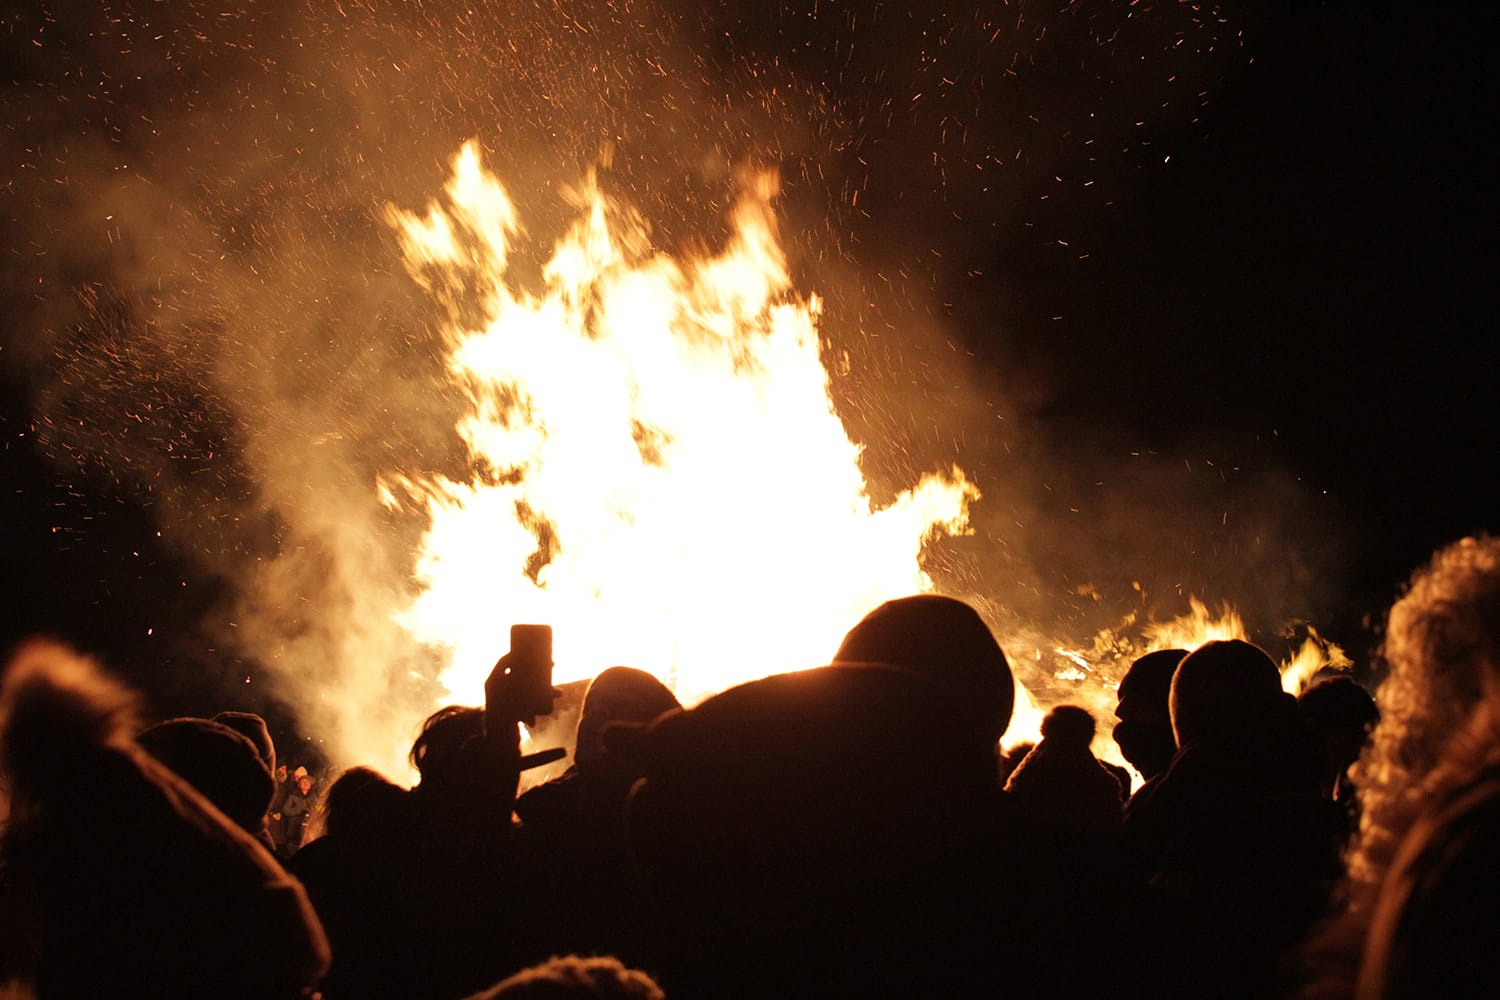 Bon fire on New Years Eve in Reykjavik, Iceland